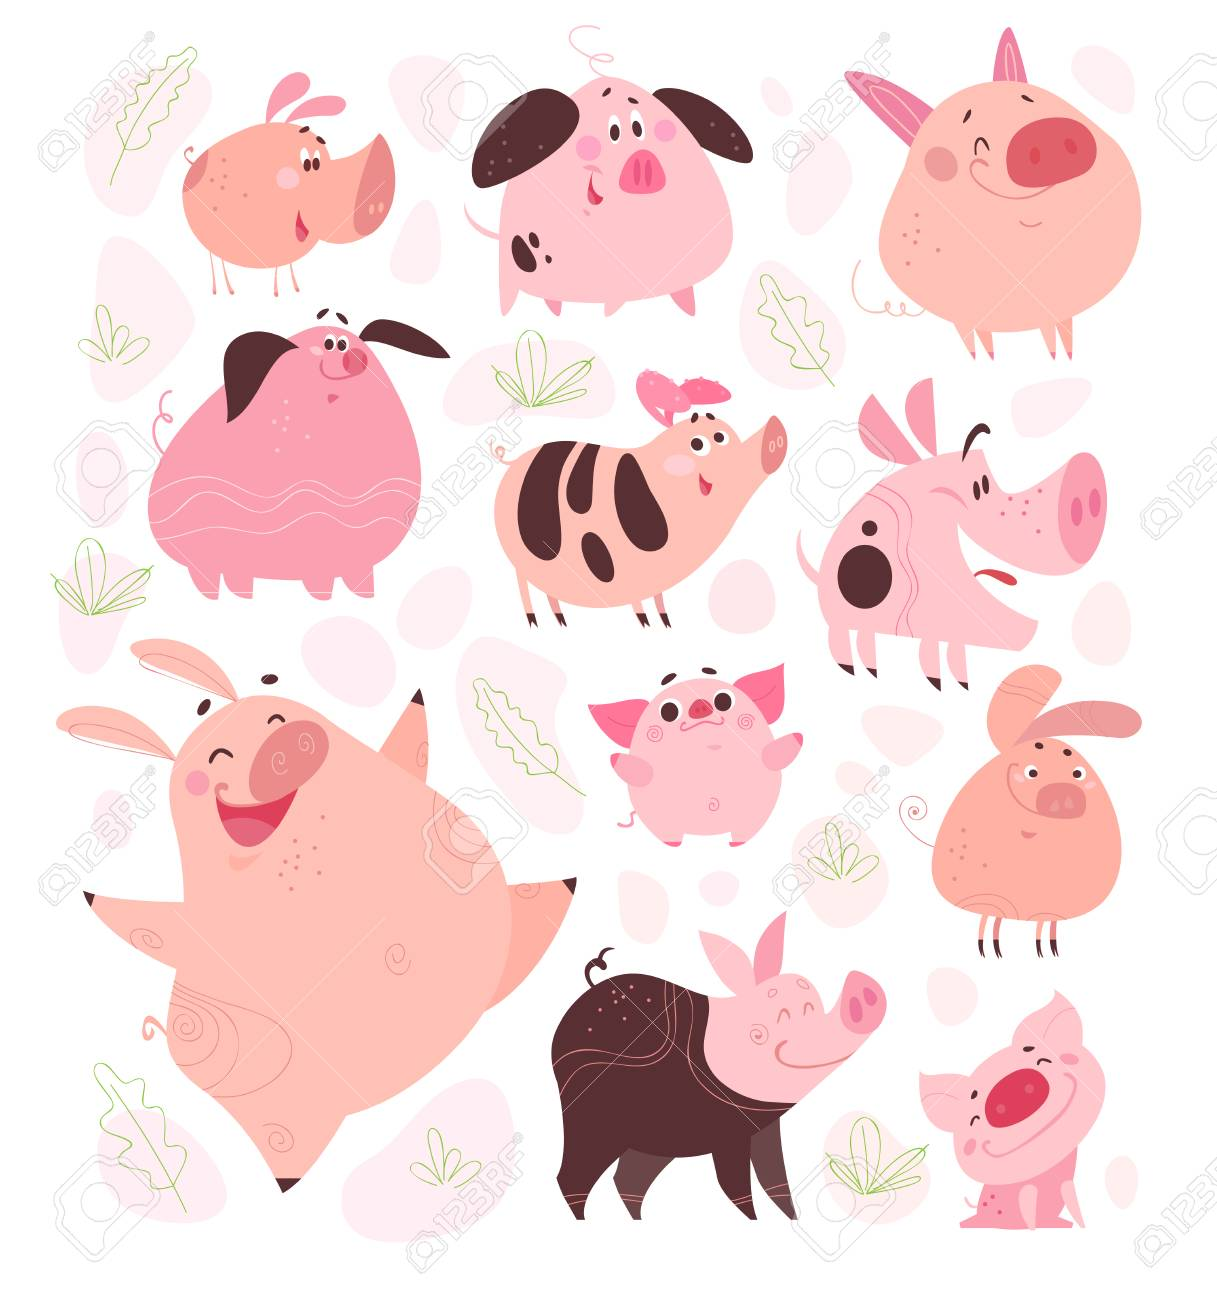 Vector vector set of funny flat different pig characters design isolated on white background collection of friendly smiling pink porks farm animals